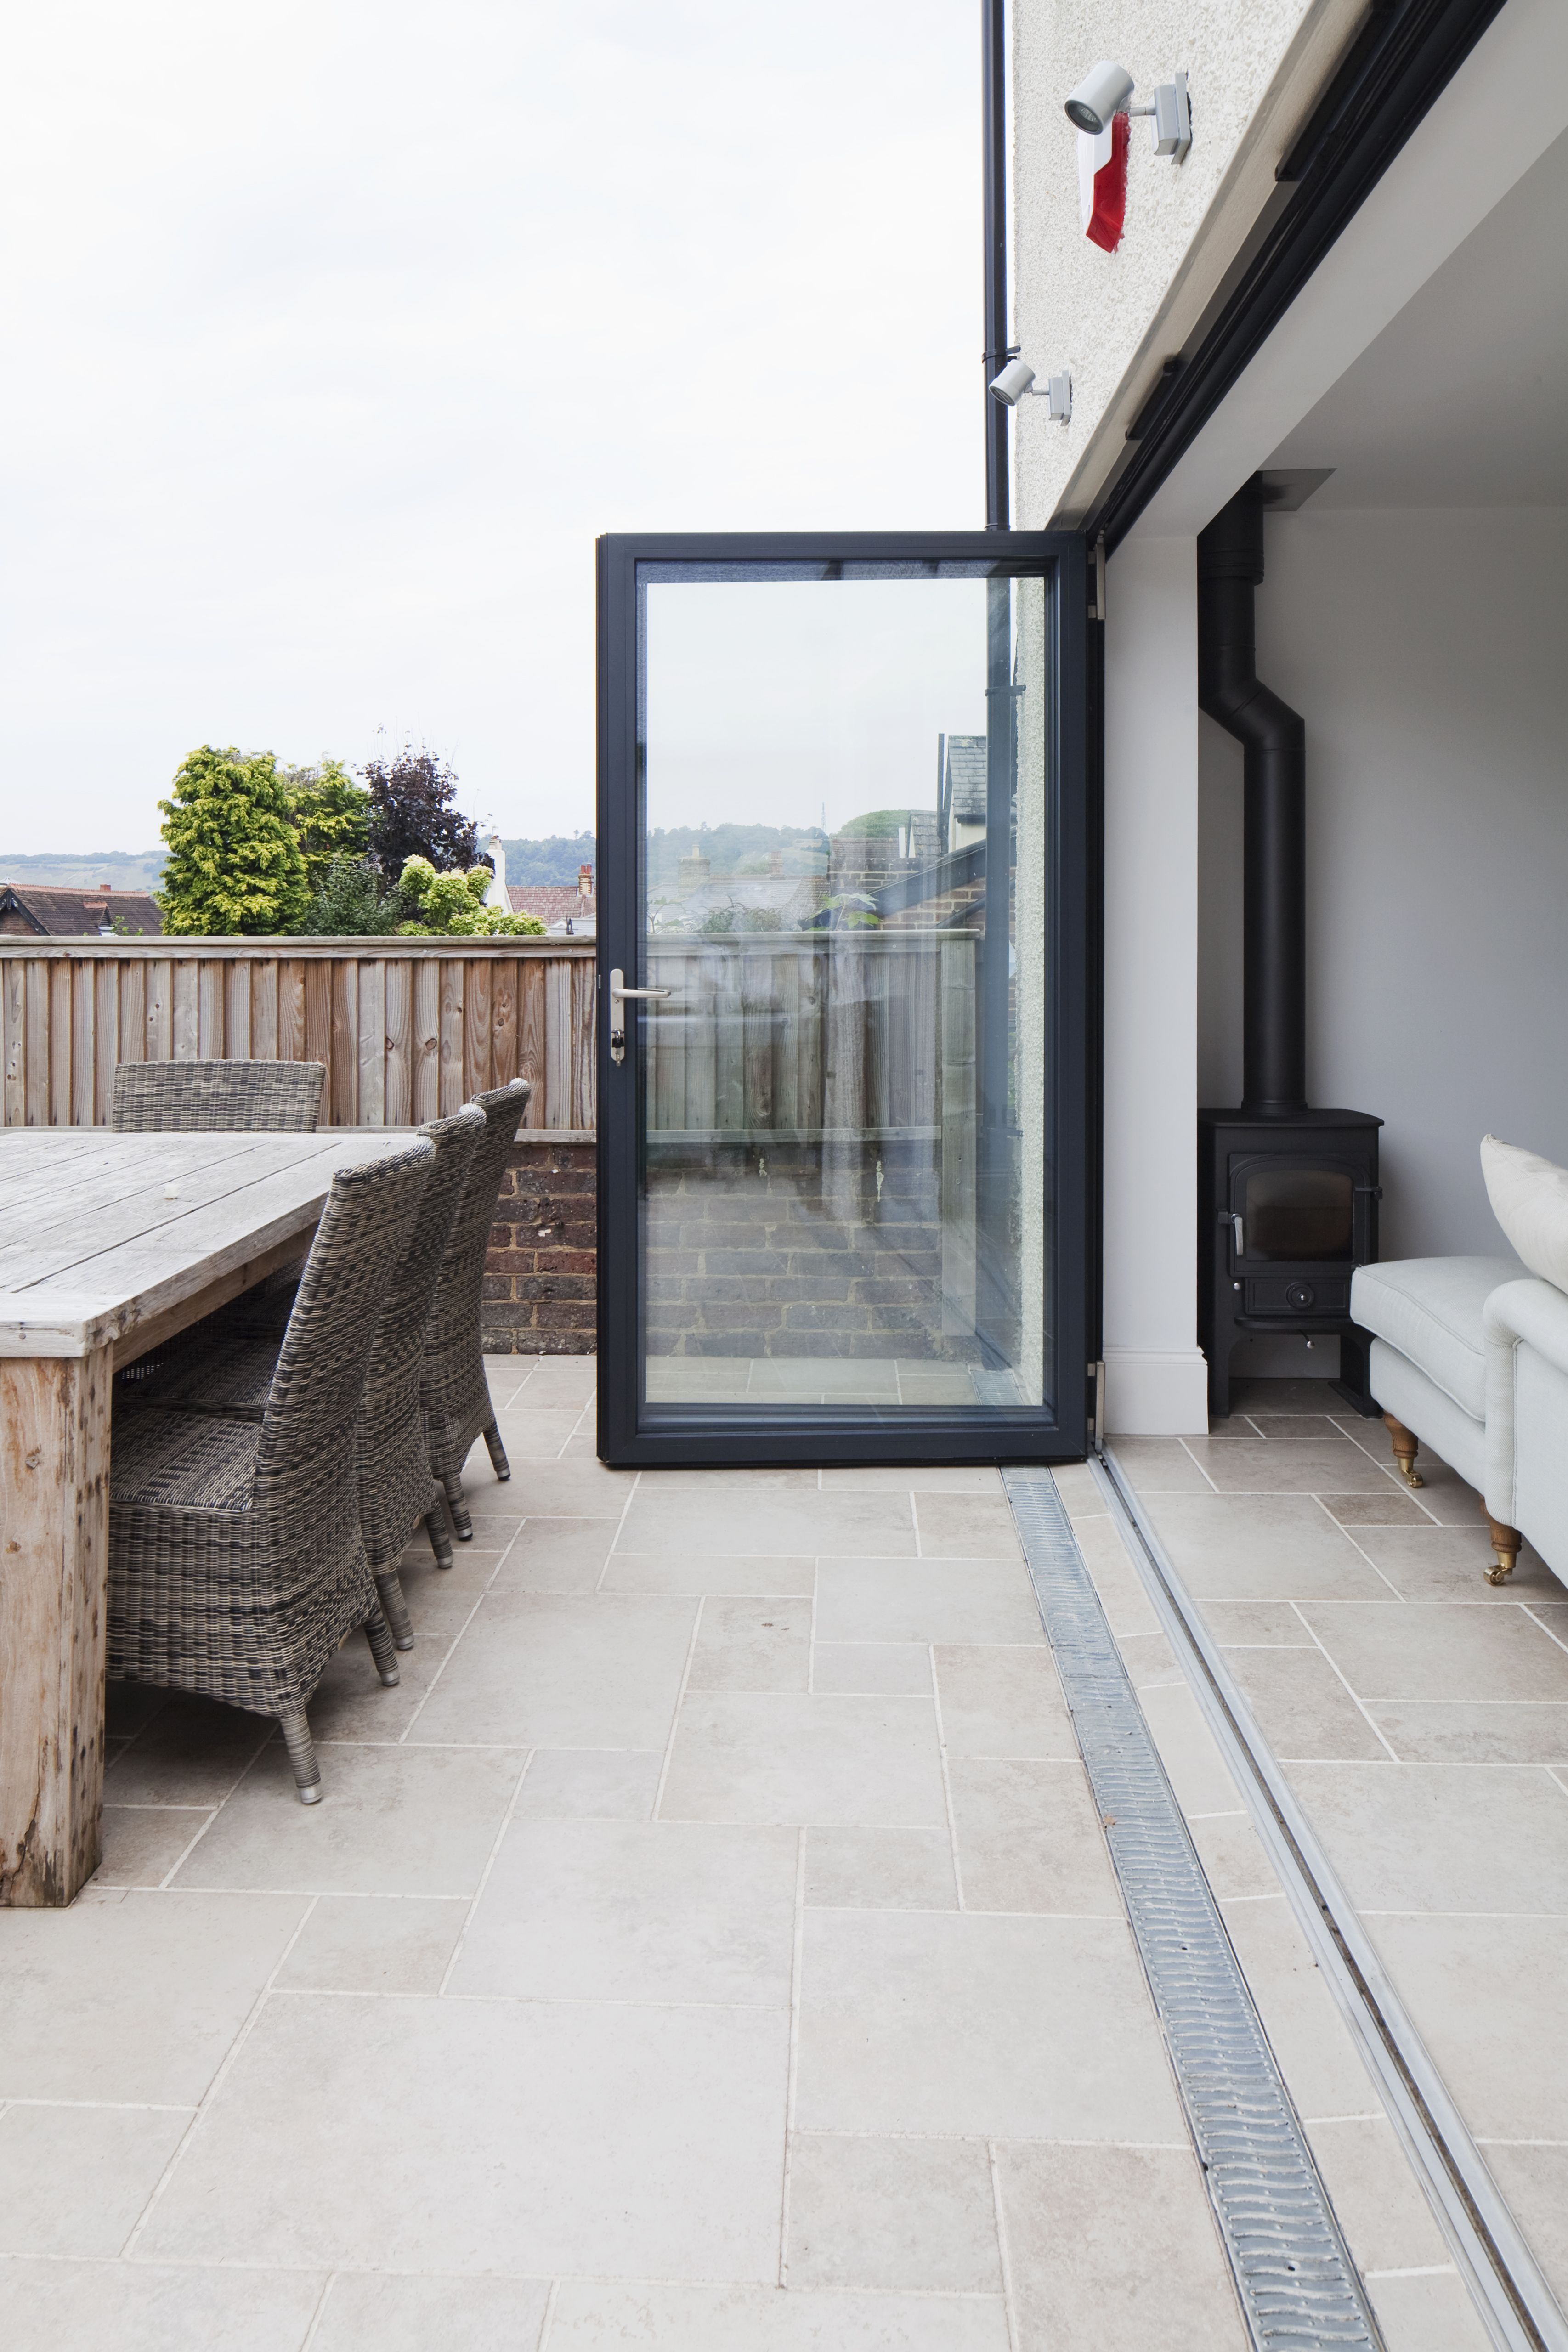 Aluminium Bi Fold Doors Level Threshold With Stone Floor Seamlessly Connecting Inside And Outside Spaces Con Patio Flooring Outside Flooring House Exterior